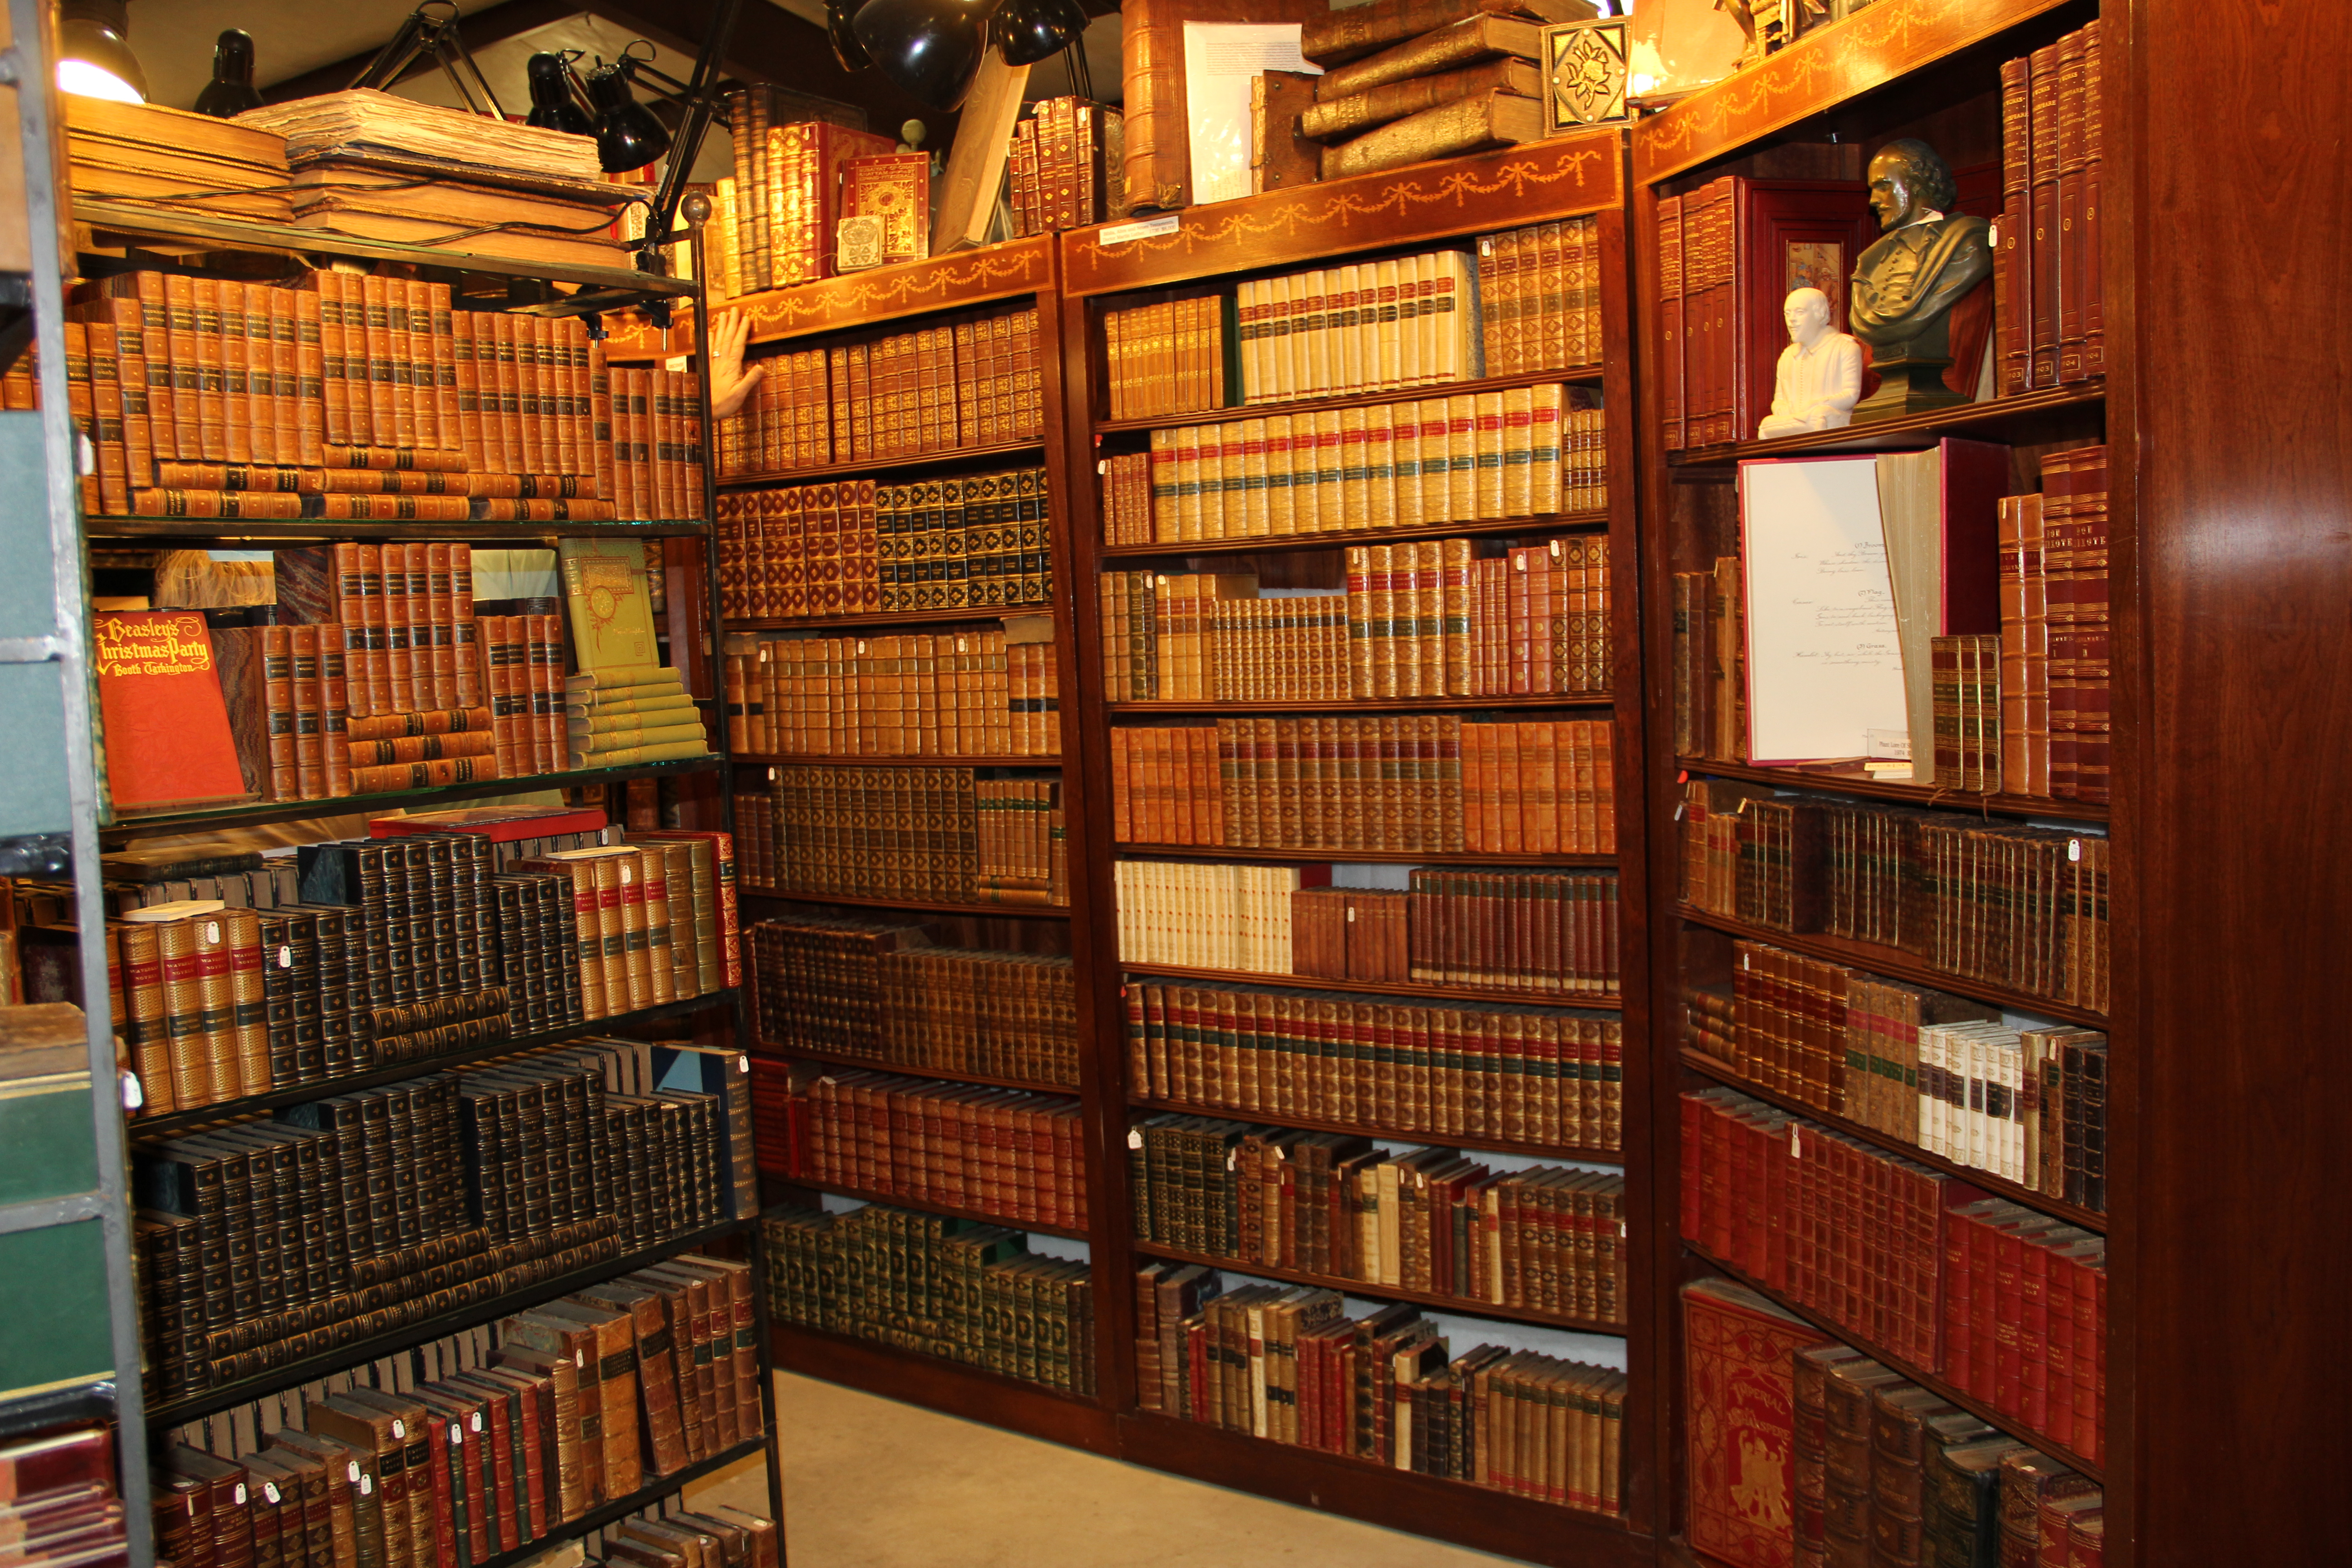 What is the best way to learn about Antiques? One can read ...